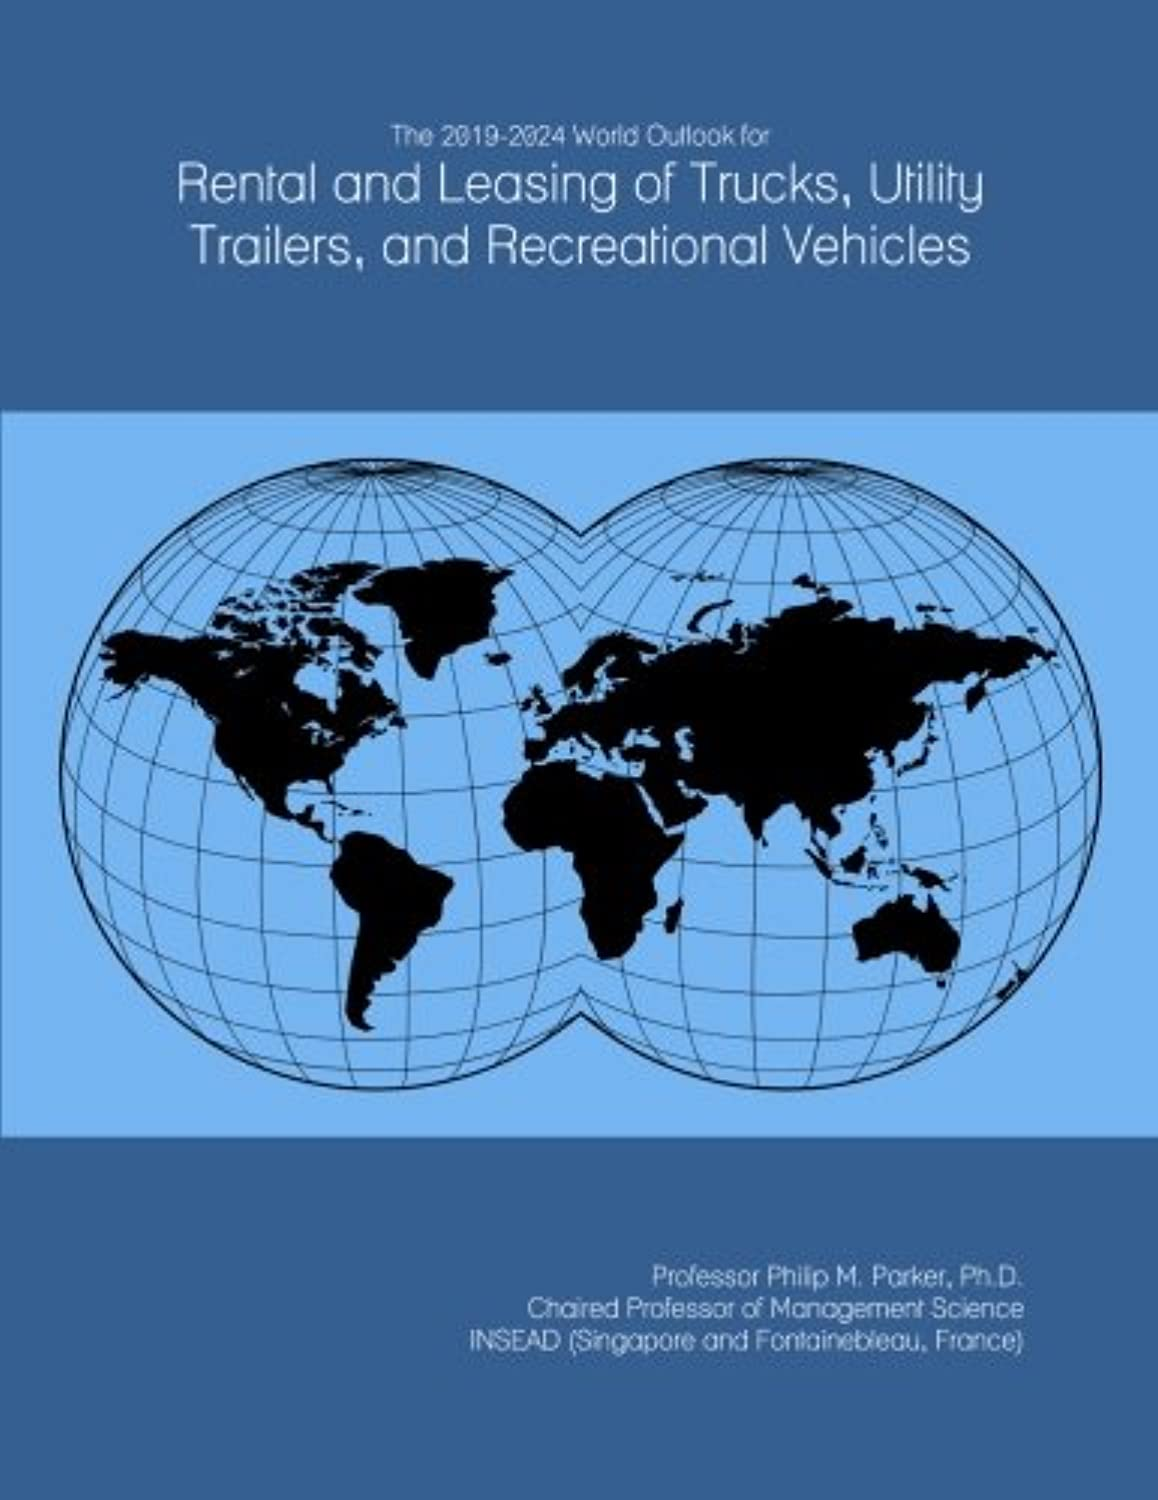 The 2019-2024 World Outlook for Rental and Leasing of Trucks, Utility Trailers, and Recreational Vehicles